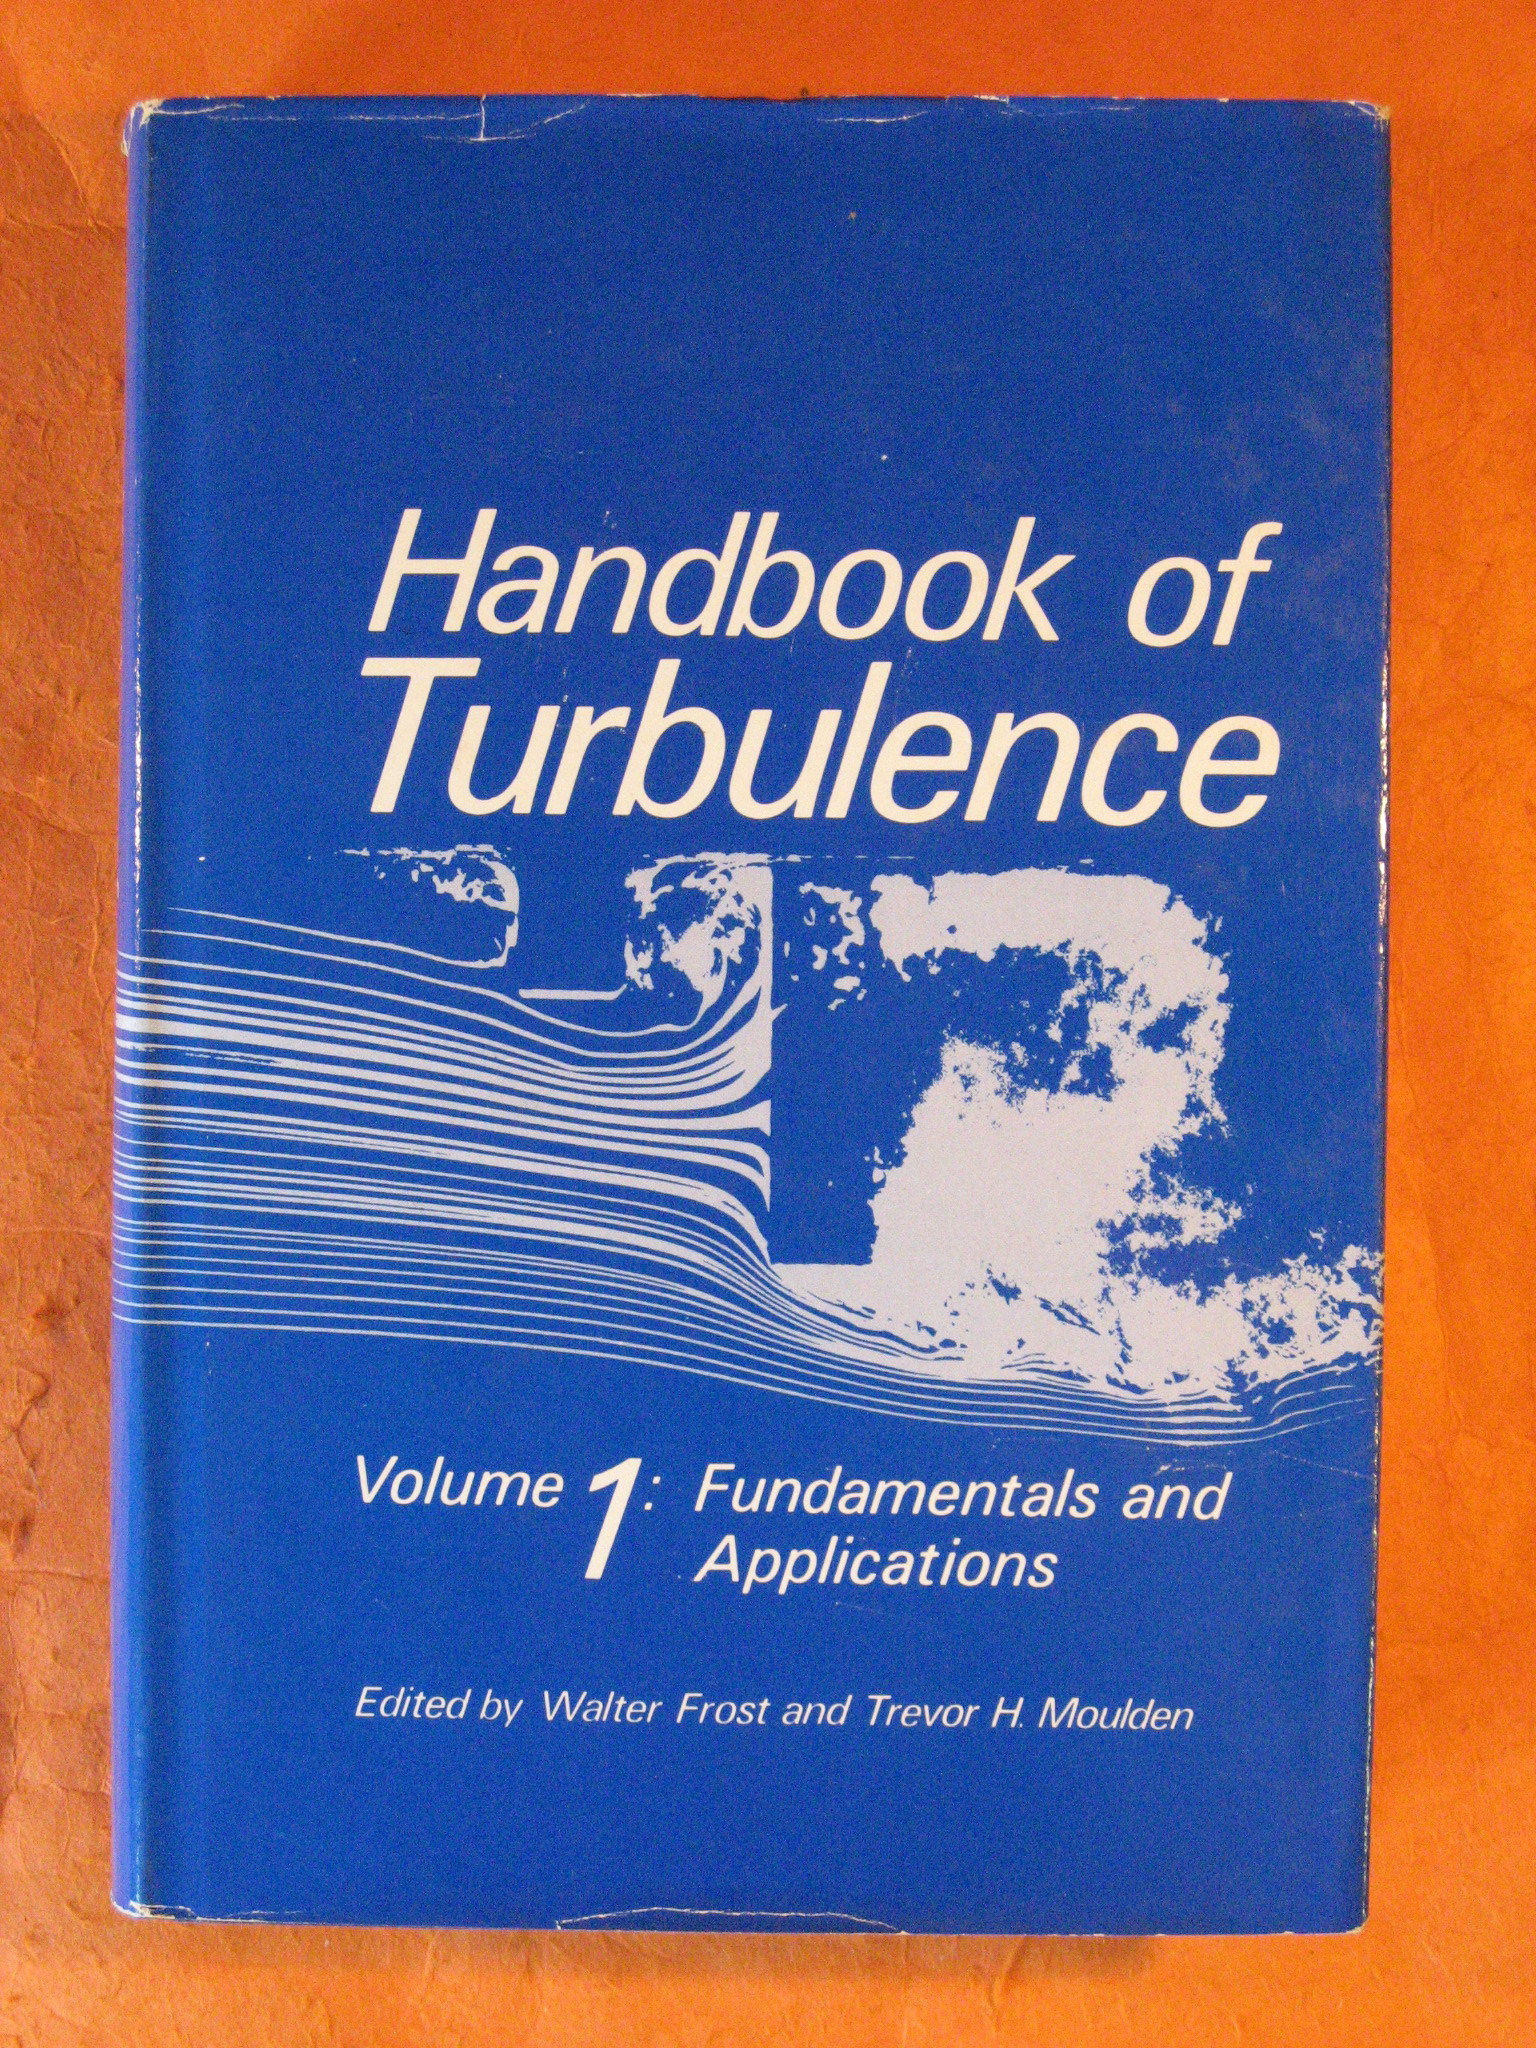 Handbook of Turbulence: Volume 1 Fundamentals and Applications, Frost, Walter P; Moulden, Trevor H.  (eds.)